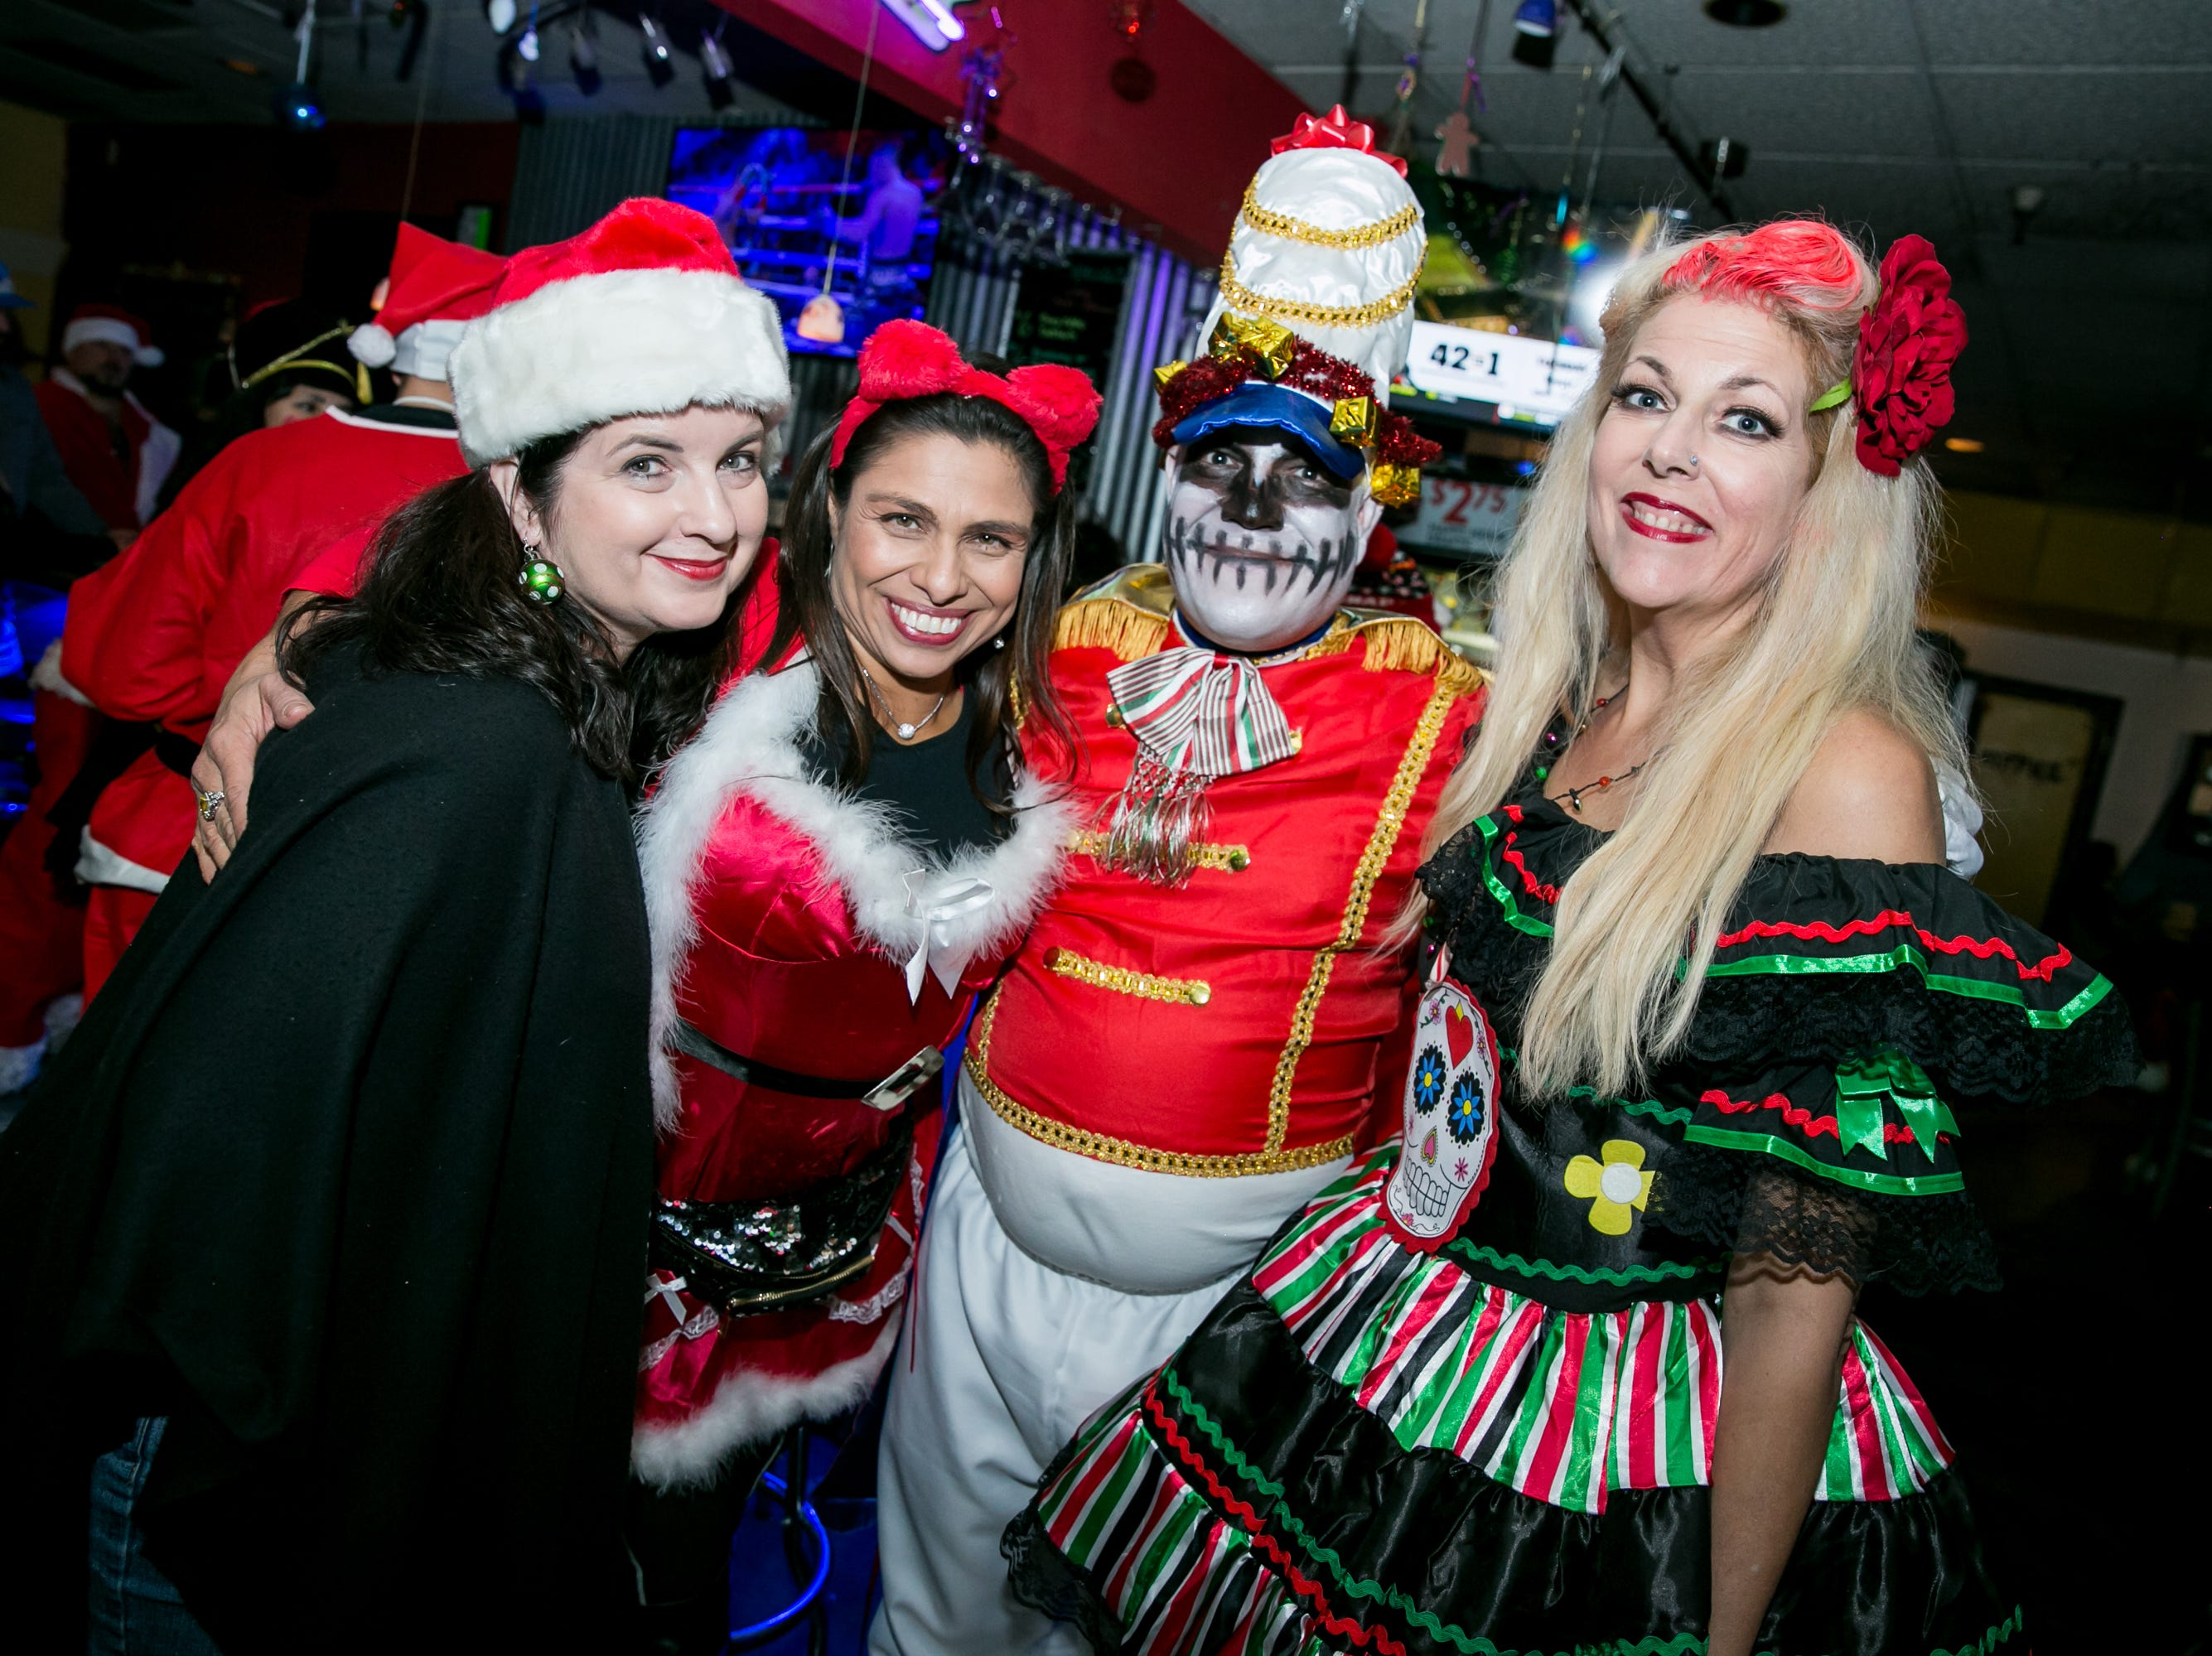 This group was full of holiday cheer at Steve's Greenhouse Grill during Santarchy on Saturday, December 8, 2018.